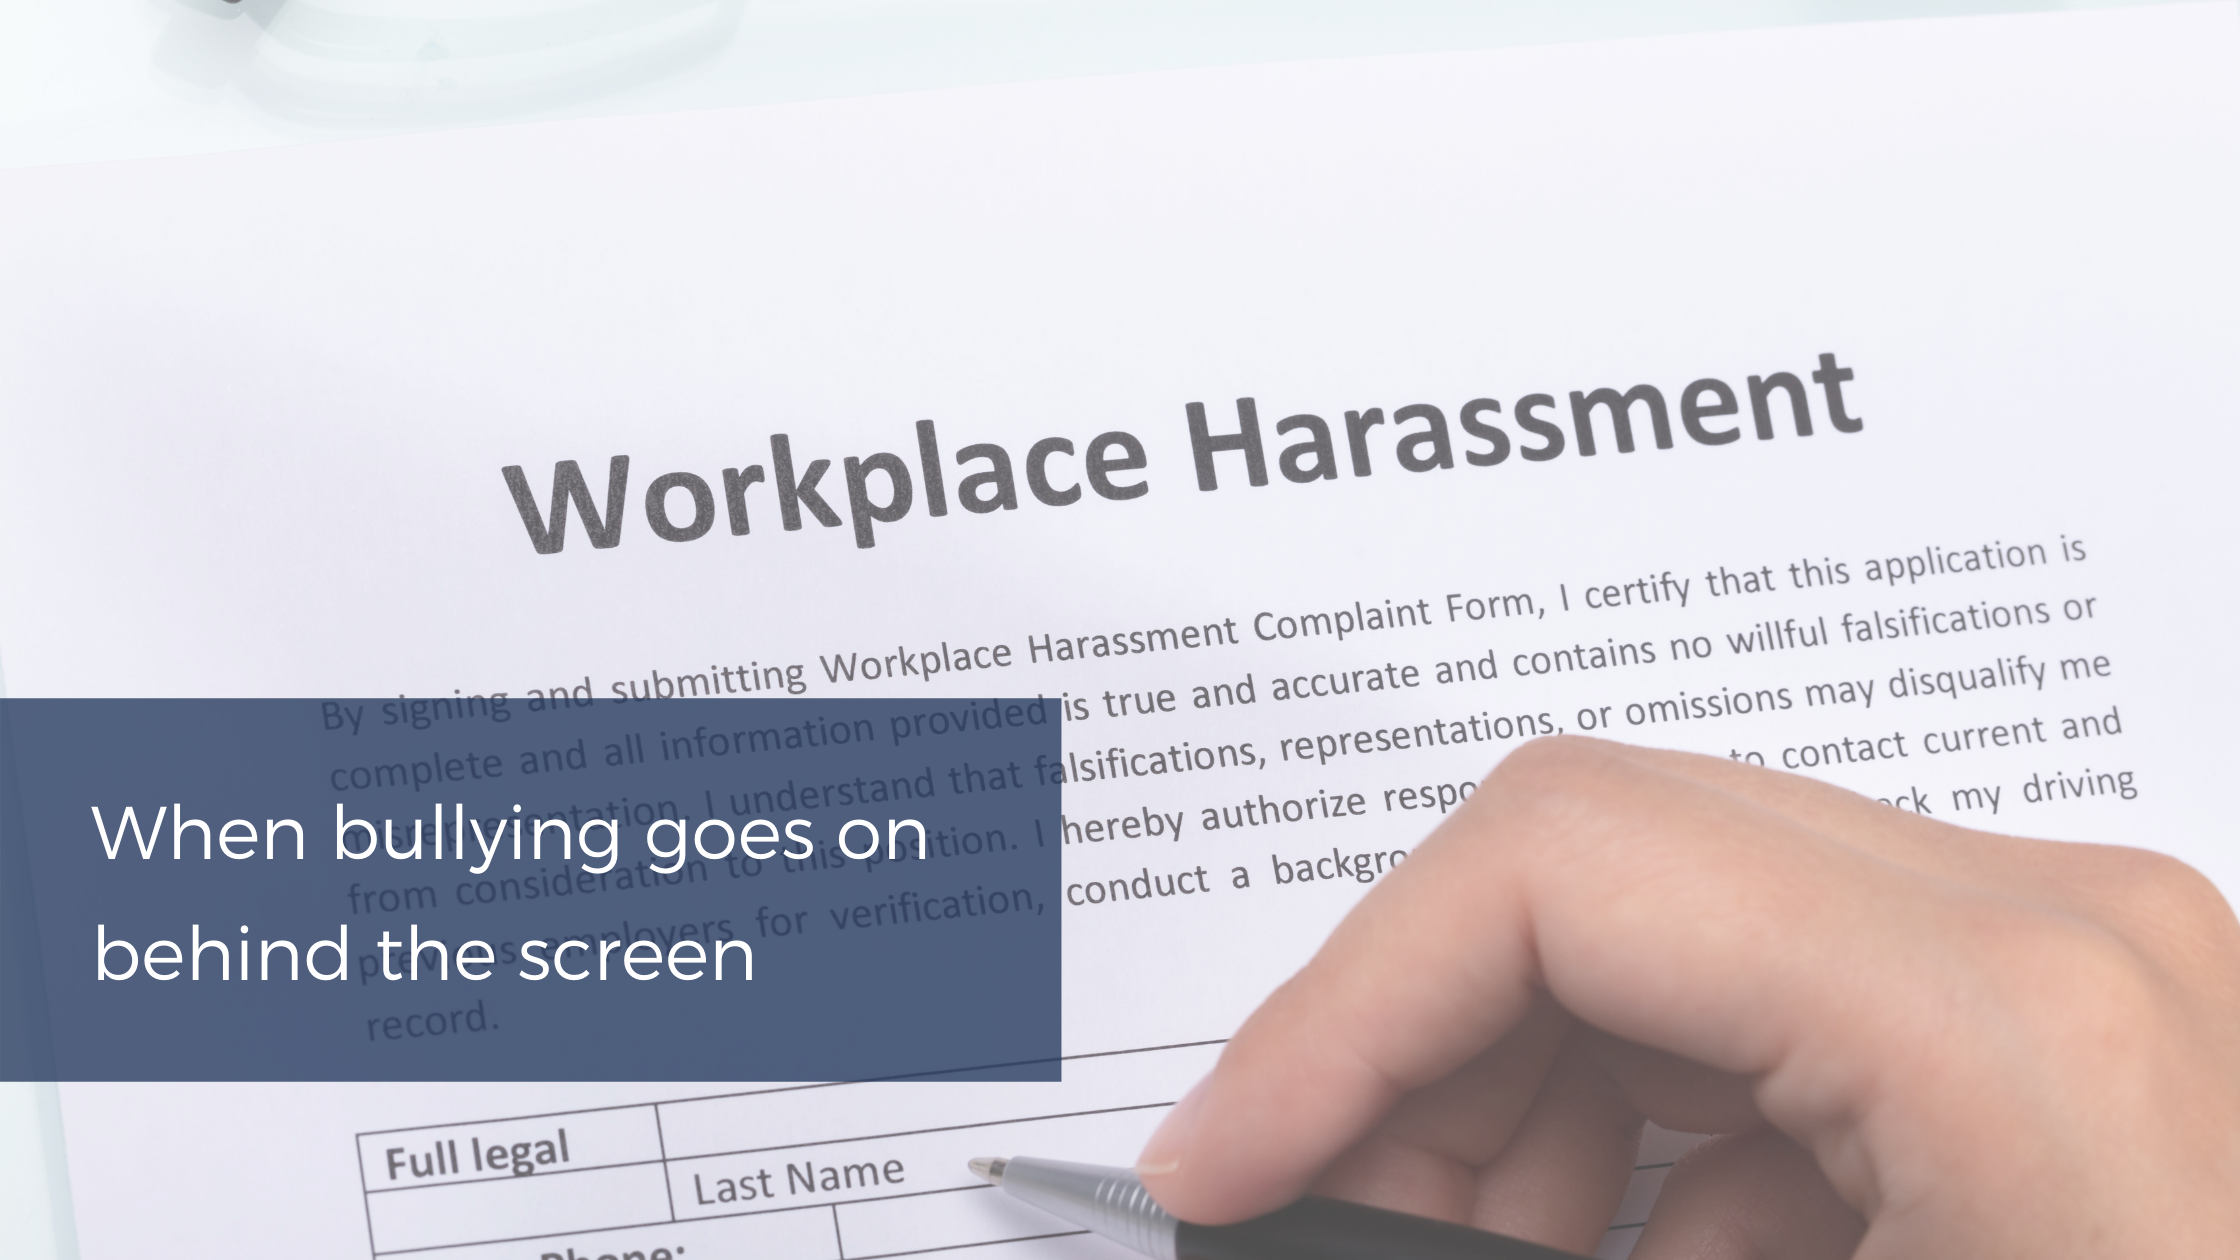 Workplace anti-bullying and harrassment